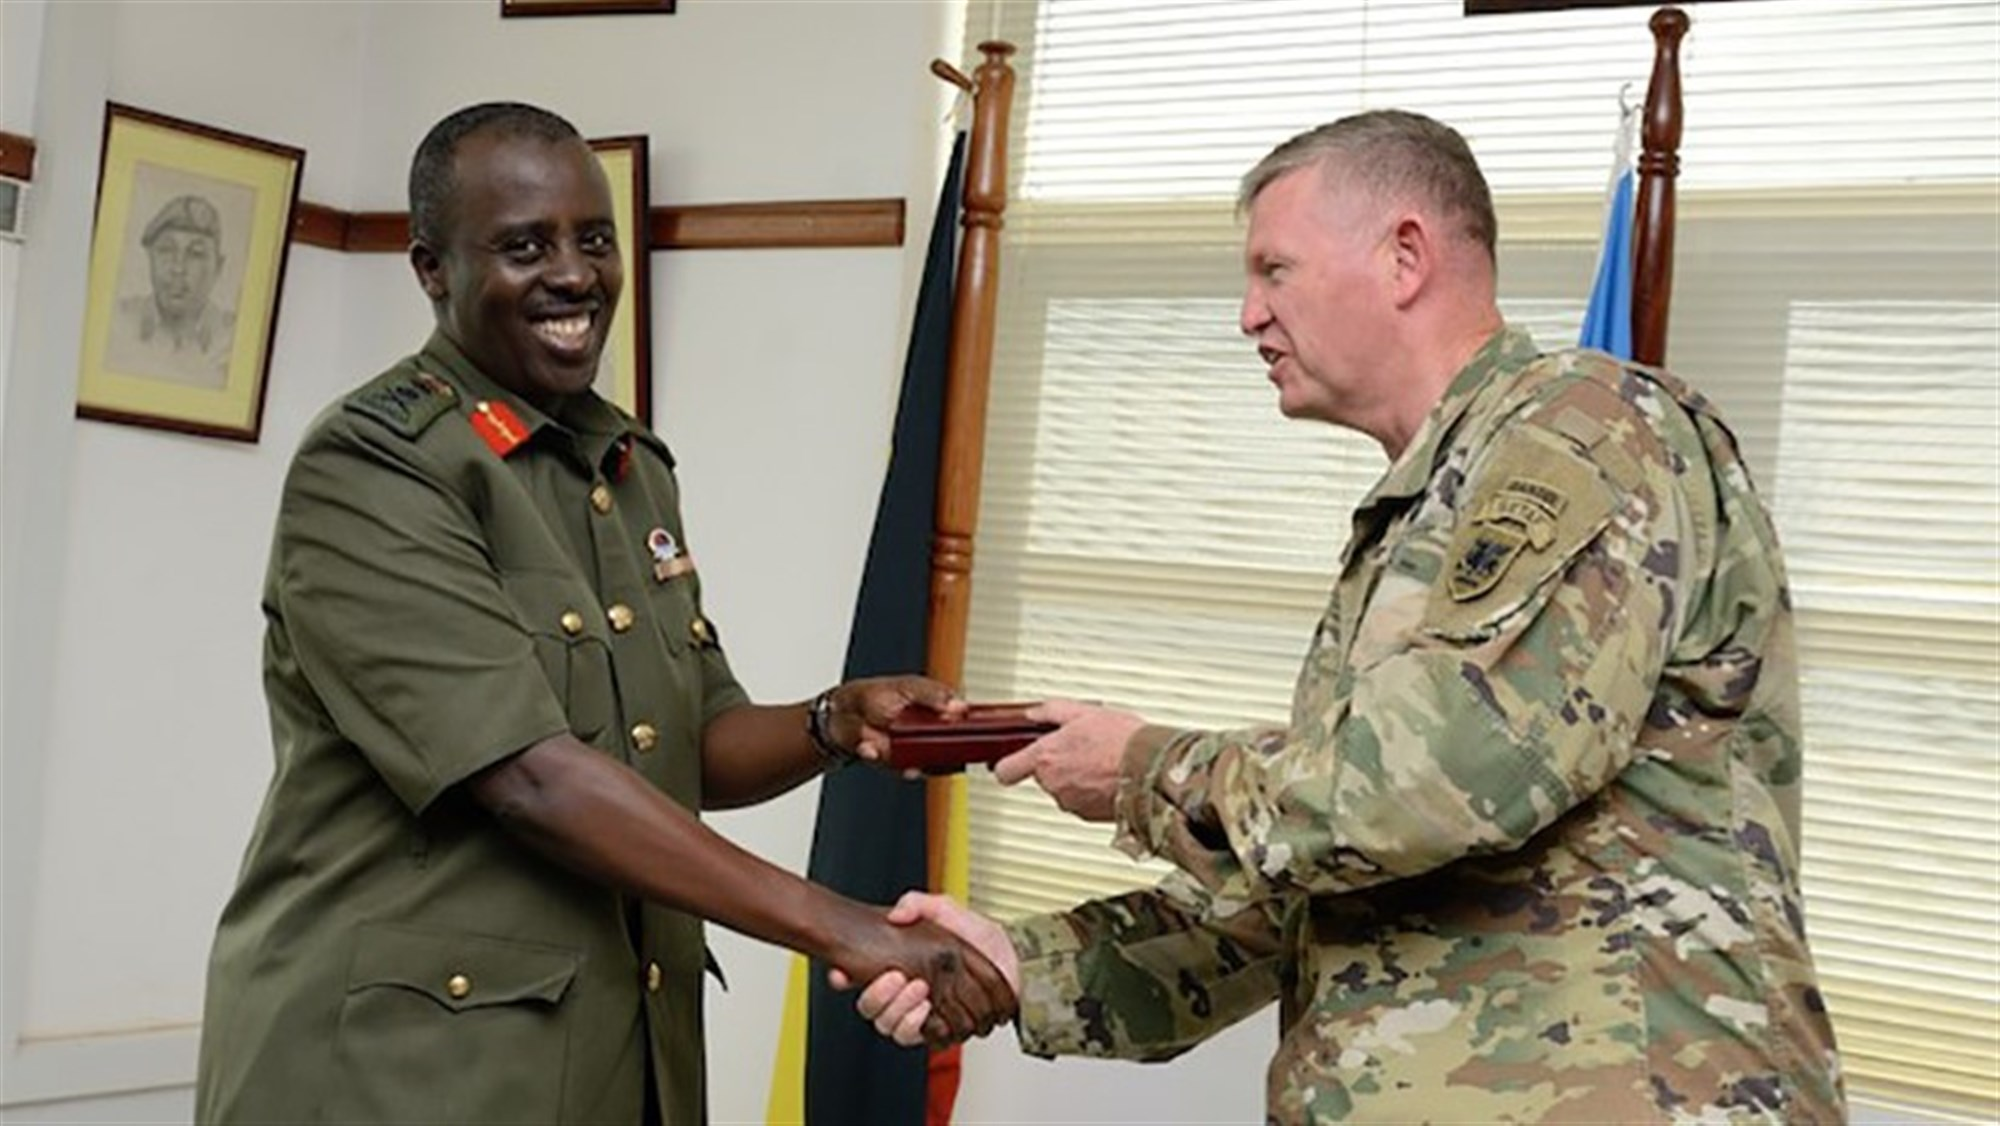 KAMPALA, Uganda -- U.S. Army Africa Commander Maj. Gen. Joseph P. Harrington, right, exchanges gifts with Gen. David Muhoozi, the Uganda People's Defense Force chief of defense forces, in Kampala, Uganda, July 31, 2017. The senior leaders discussed initiatives to improve long-term security capacity in the region. (Photo courtesy of U.S. Embassy Kampala)